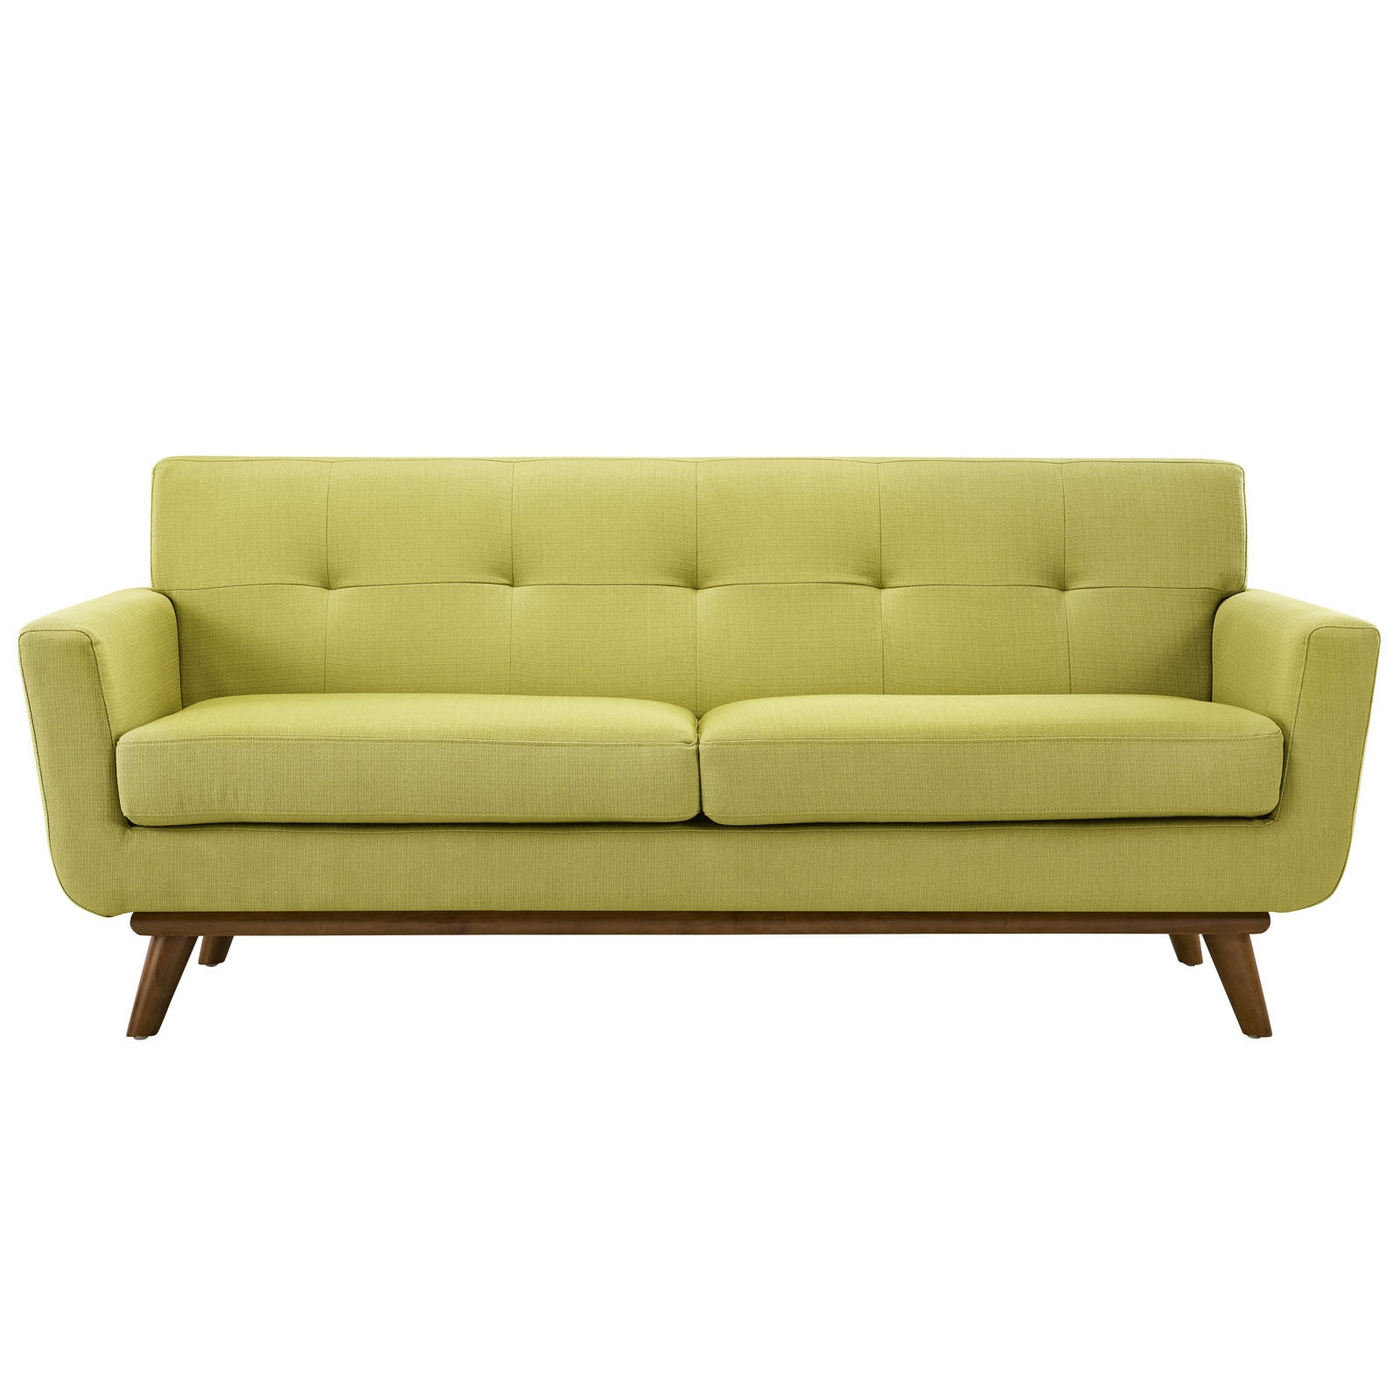 Engage Contemporary Upholstered Loveseat With Wooden Legs Wheatgrass